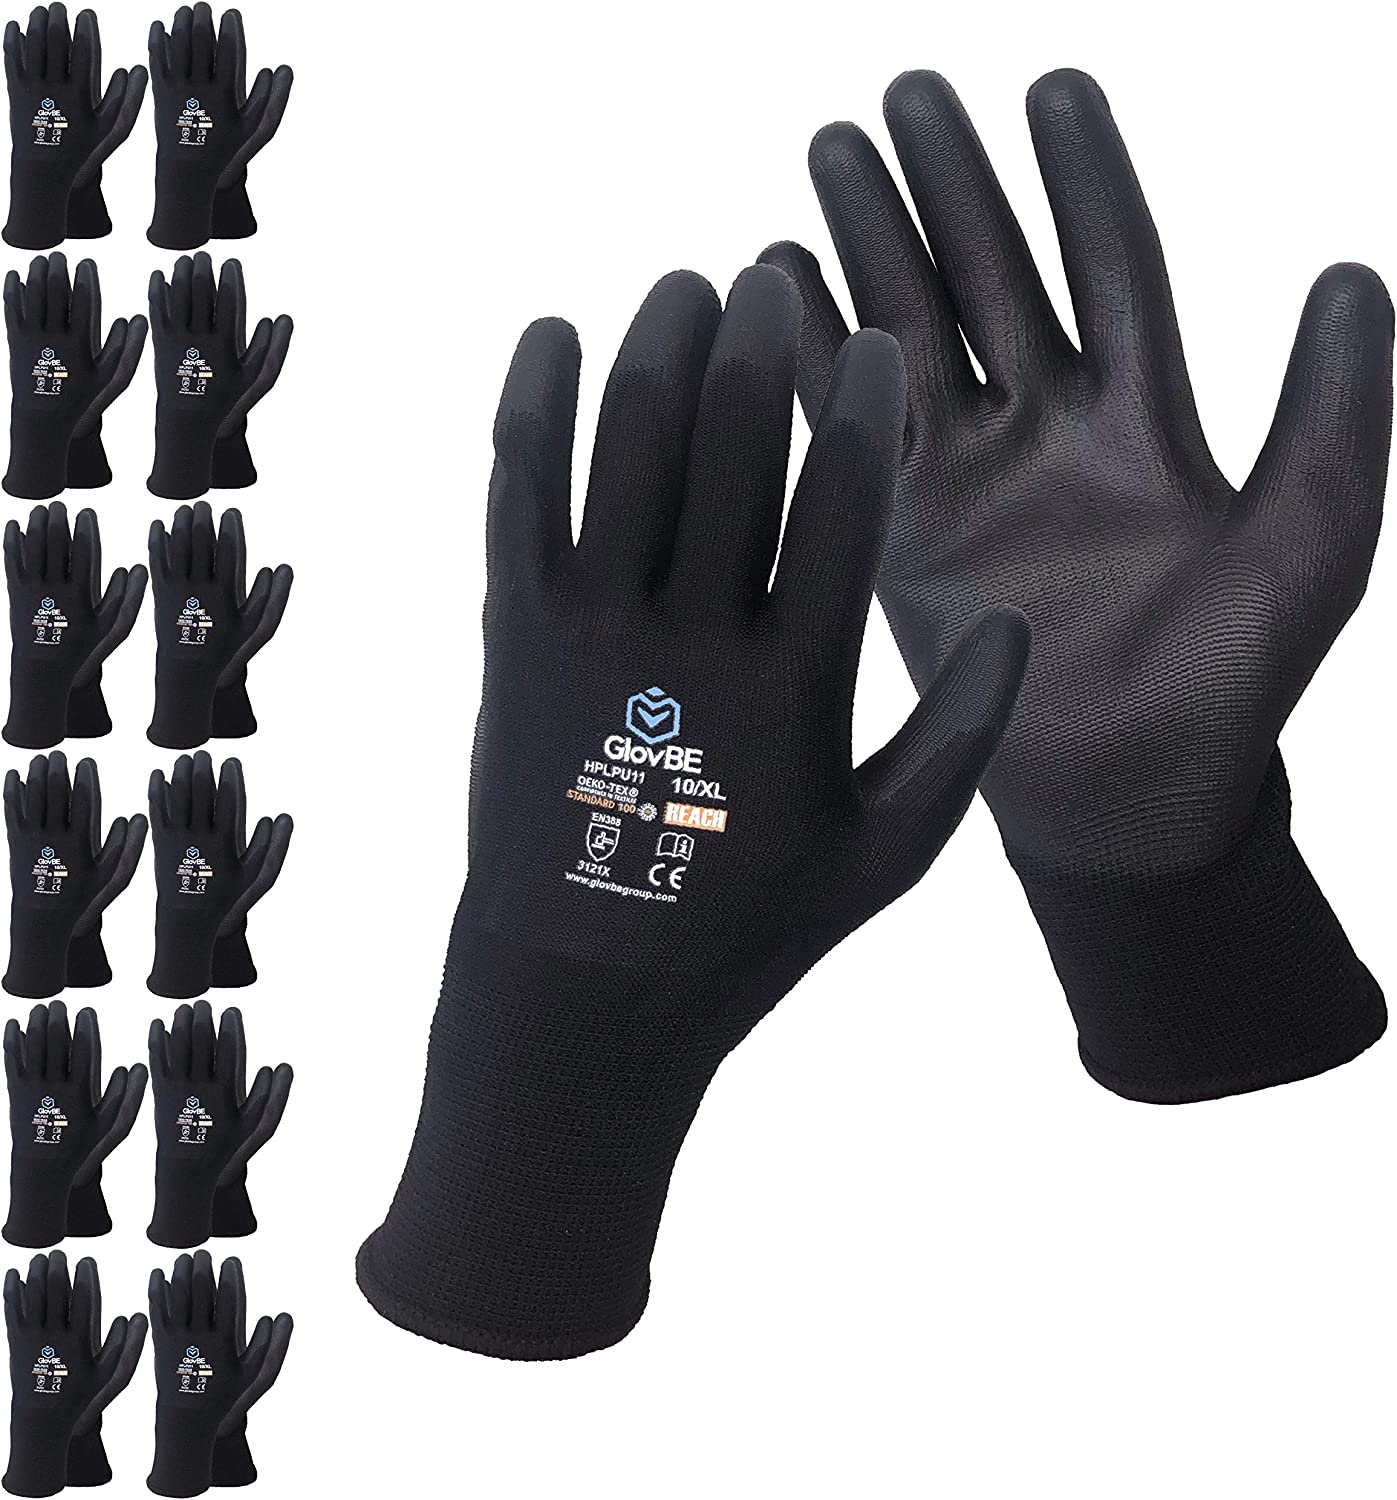 GlovBE 12 Pairs 5 popular Polyester Work Max 73% OFF Coated Polyurethane PU Gloves